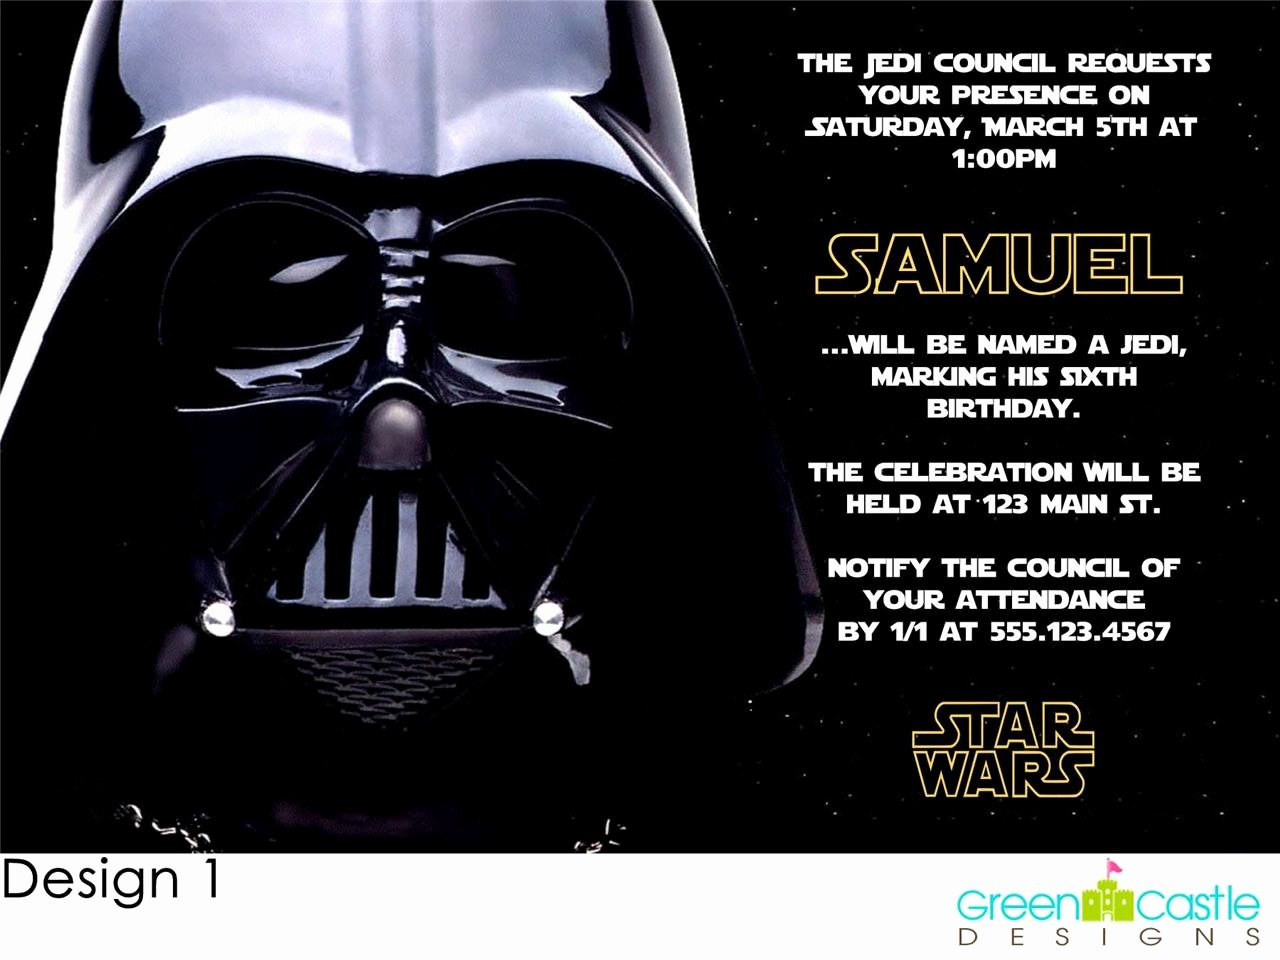 Star Wars Party Invitations Lovely 20 Star Wars Invitations Darth Vader Custom Birthday Party Invites